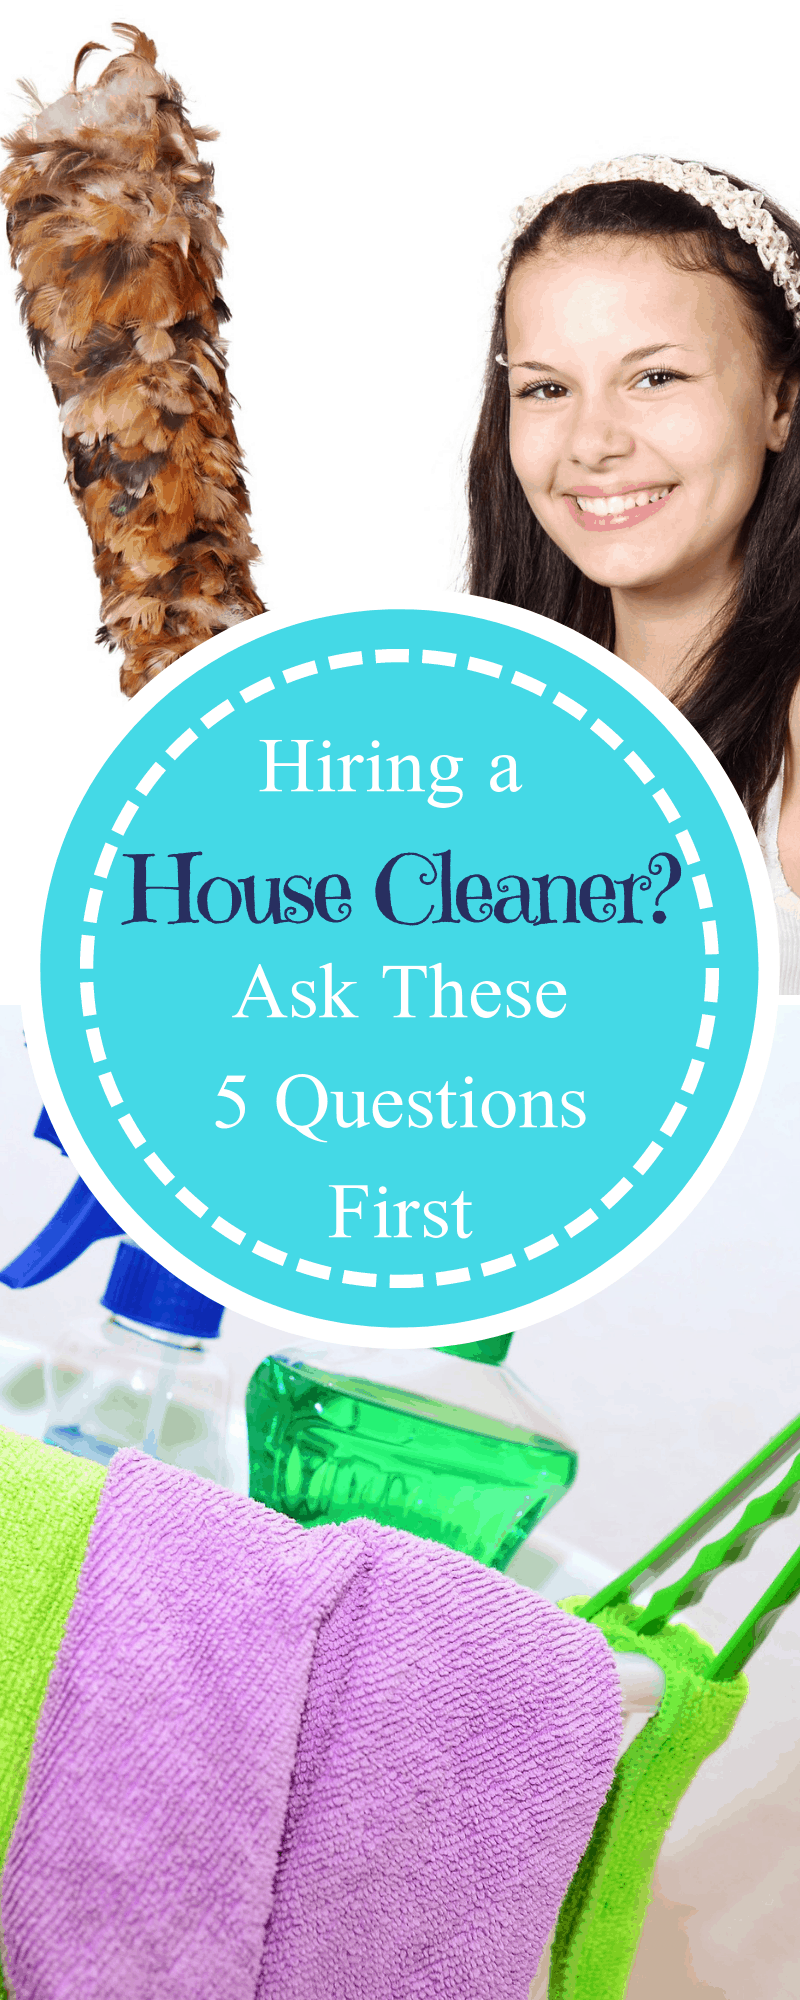 Hiring a House Cleaner? Ask These 5 Questions First